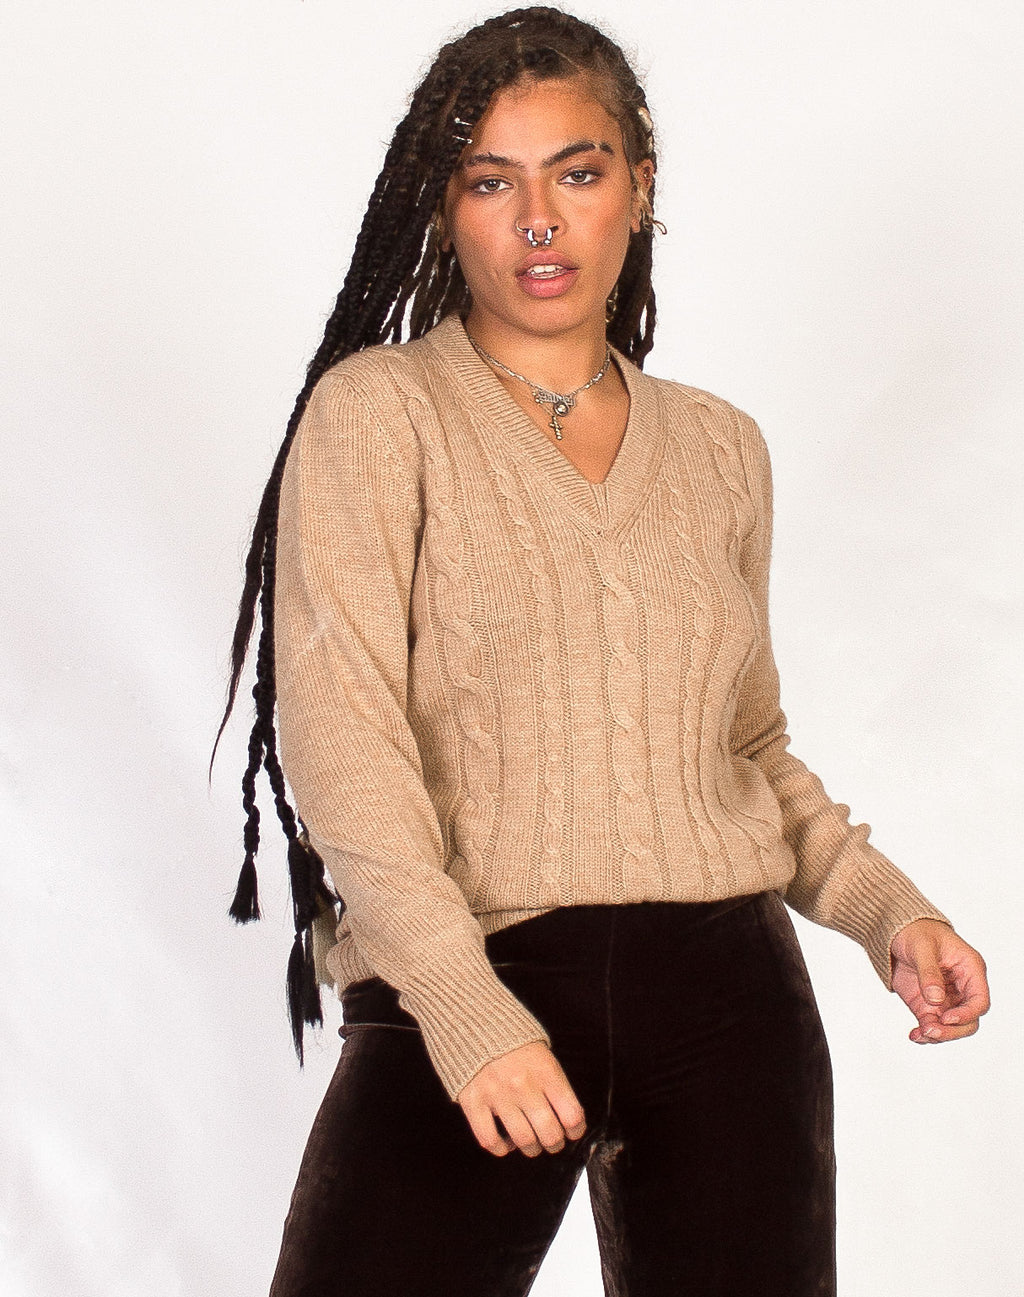 OATMEAL CABLE KNIT JUMPER